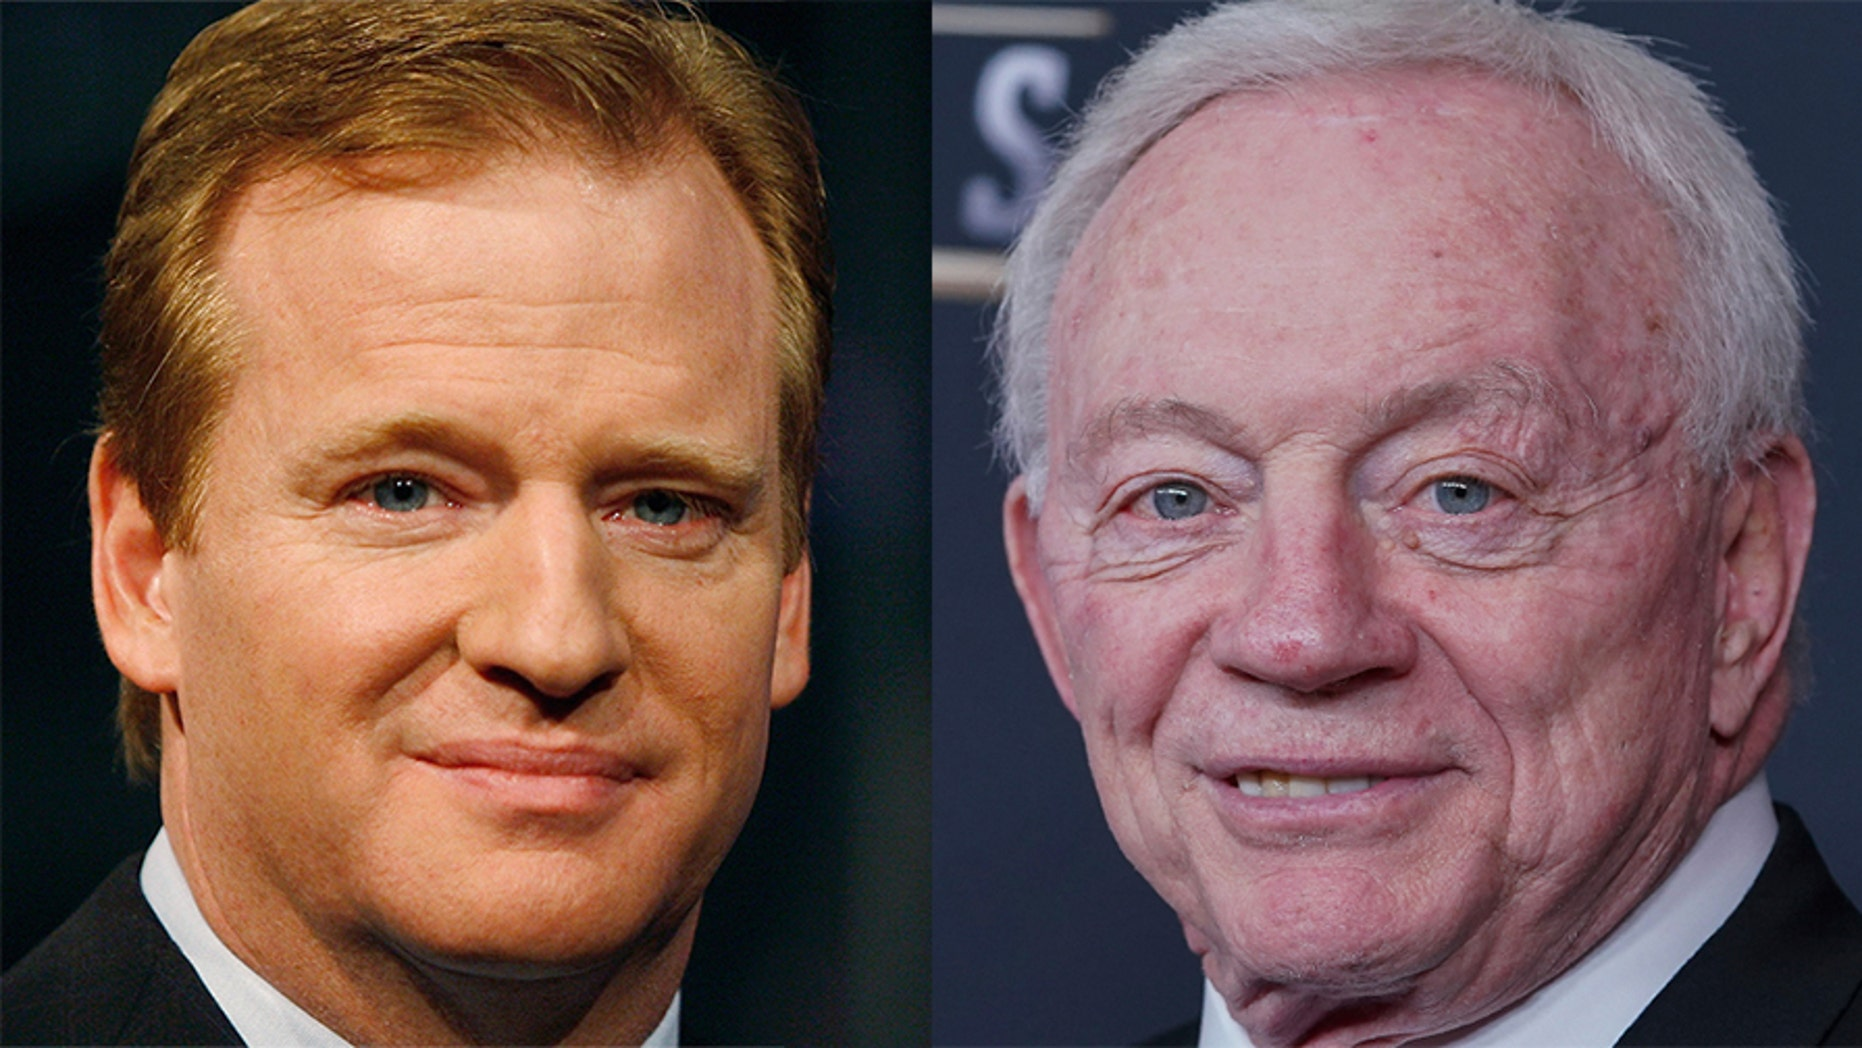 Roger Goodell, left, clashed with Jerry Jones over Goodell's compensation and the Ezekiel Elliott suspension.